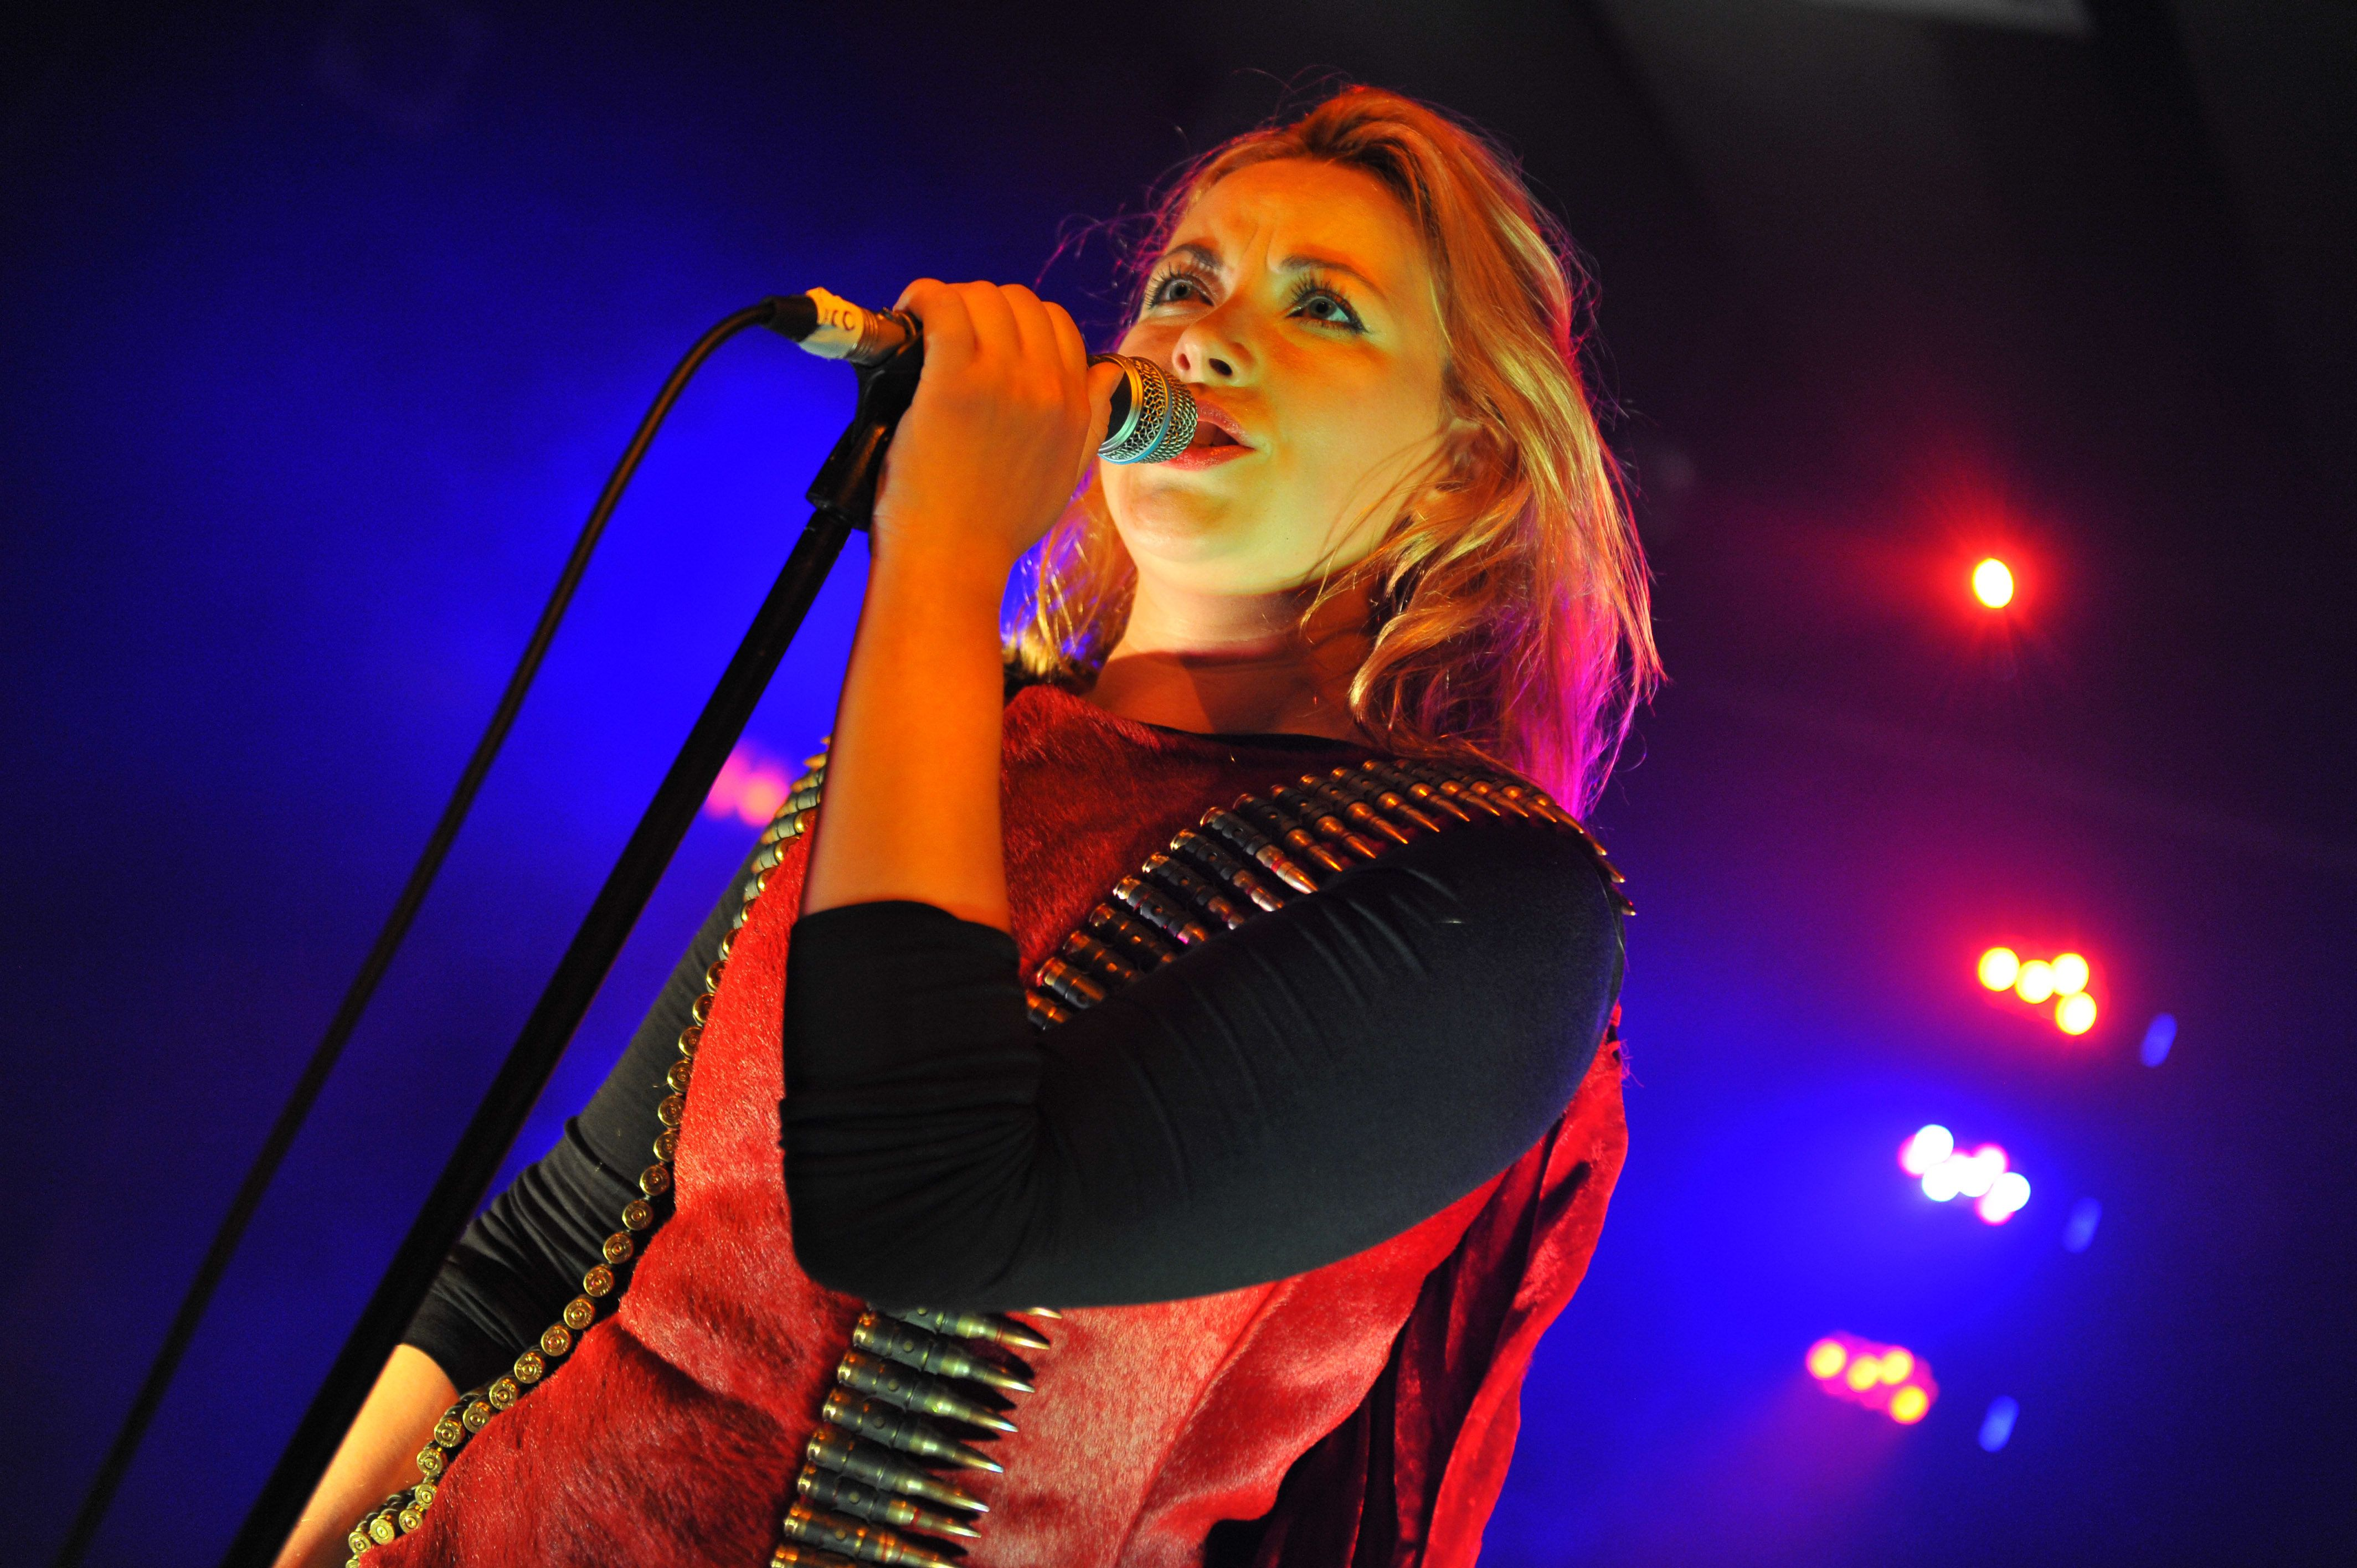 Singer Charlotte Churchconfirmed she's lost her unborn child with two posts on Twitter.